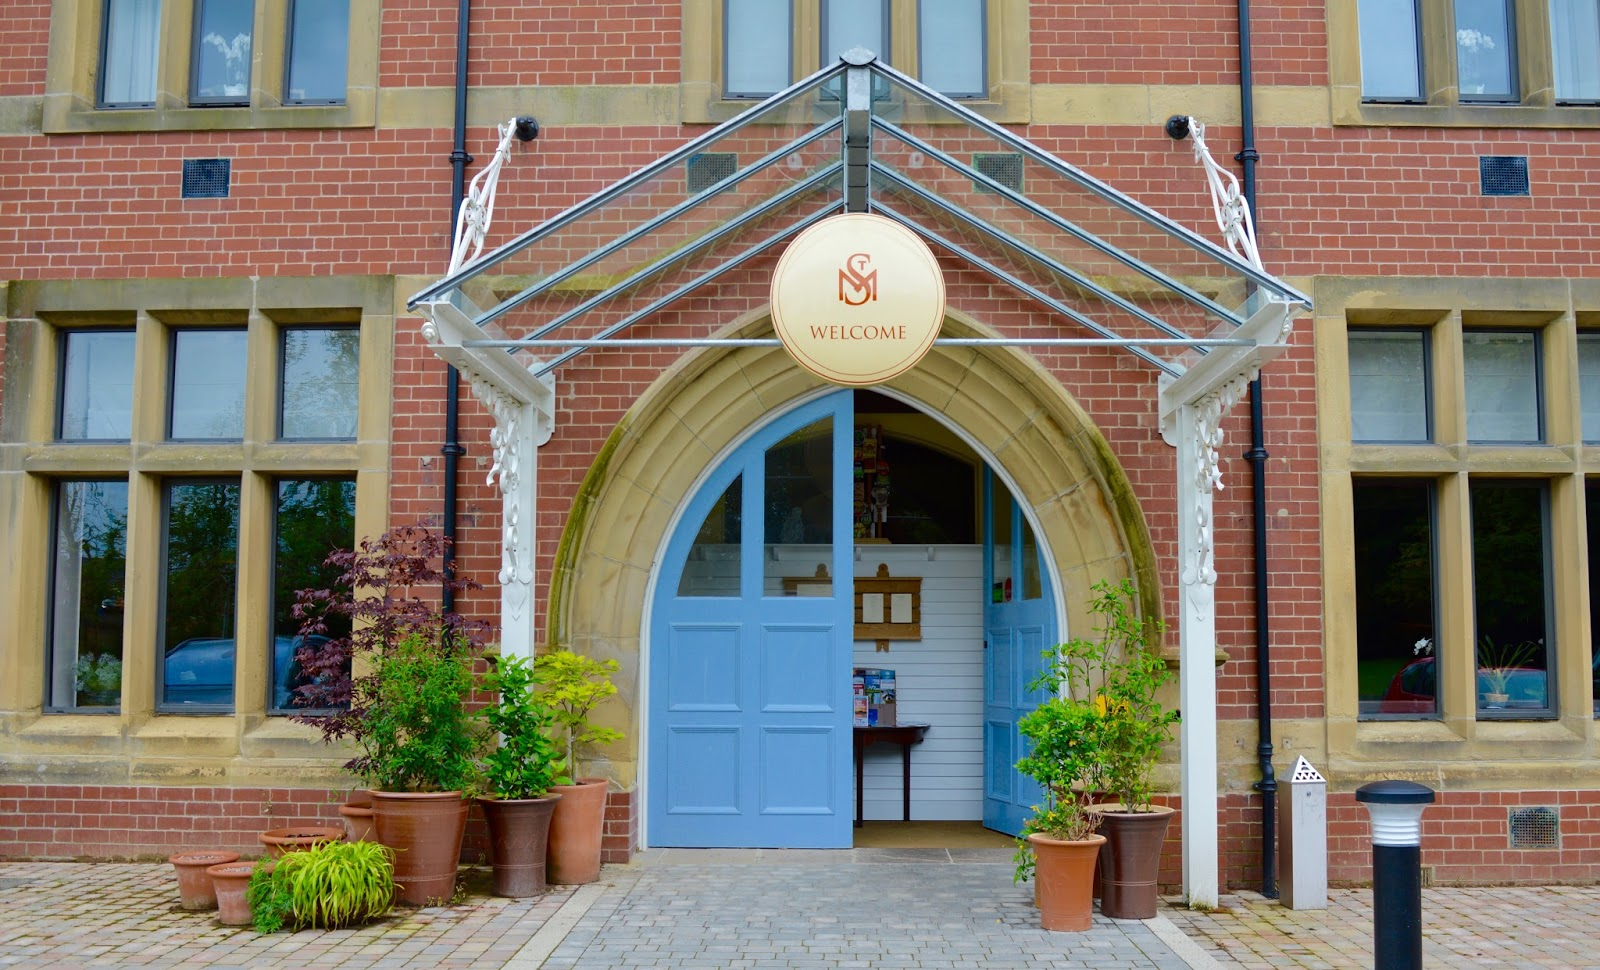 Lunch & the Children's Menu at St Mary's Inn, Stanningtonnear Morpeth | A Review